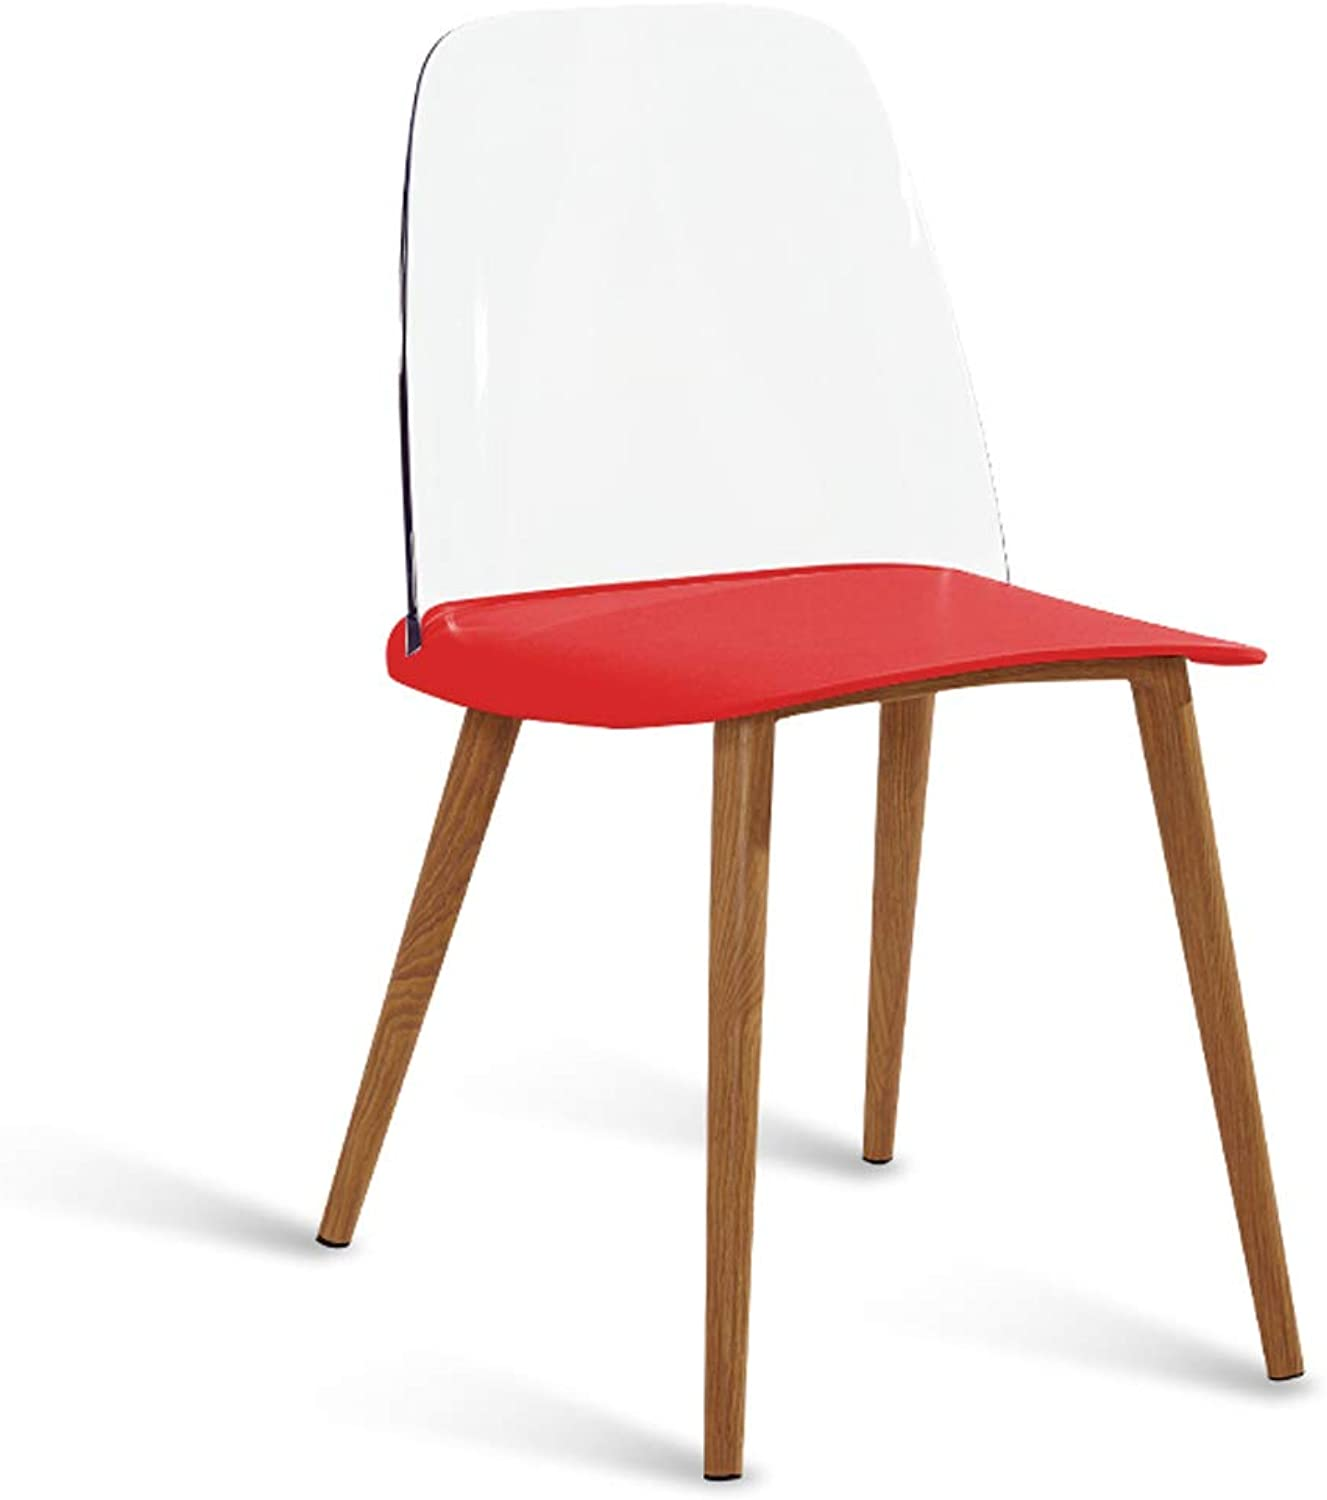 LRW Stylish Nordic Designer Dining Chair for Leisure, Family, Creative Personality, Modern Minimalist Chair, Red